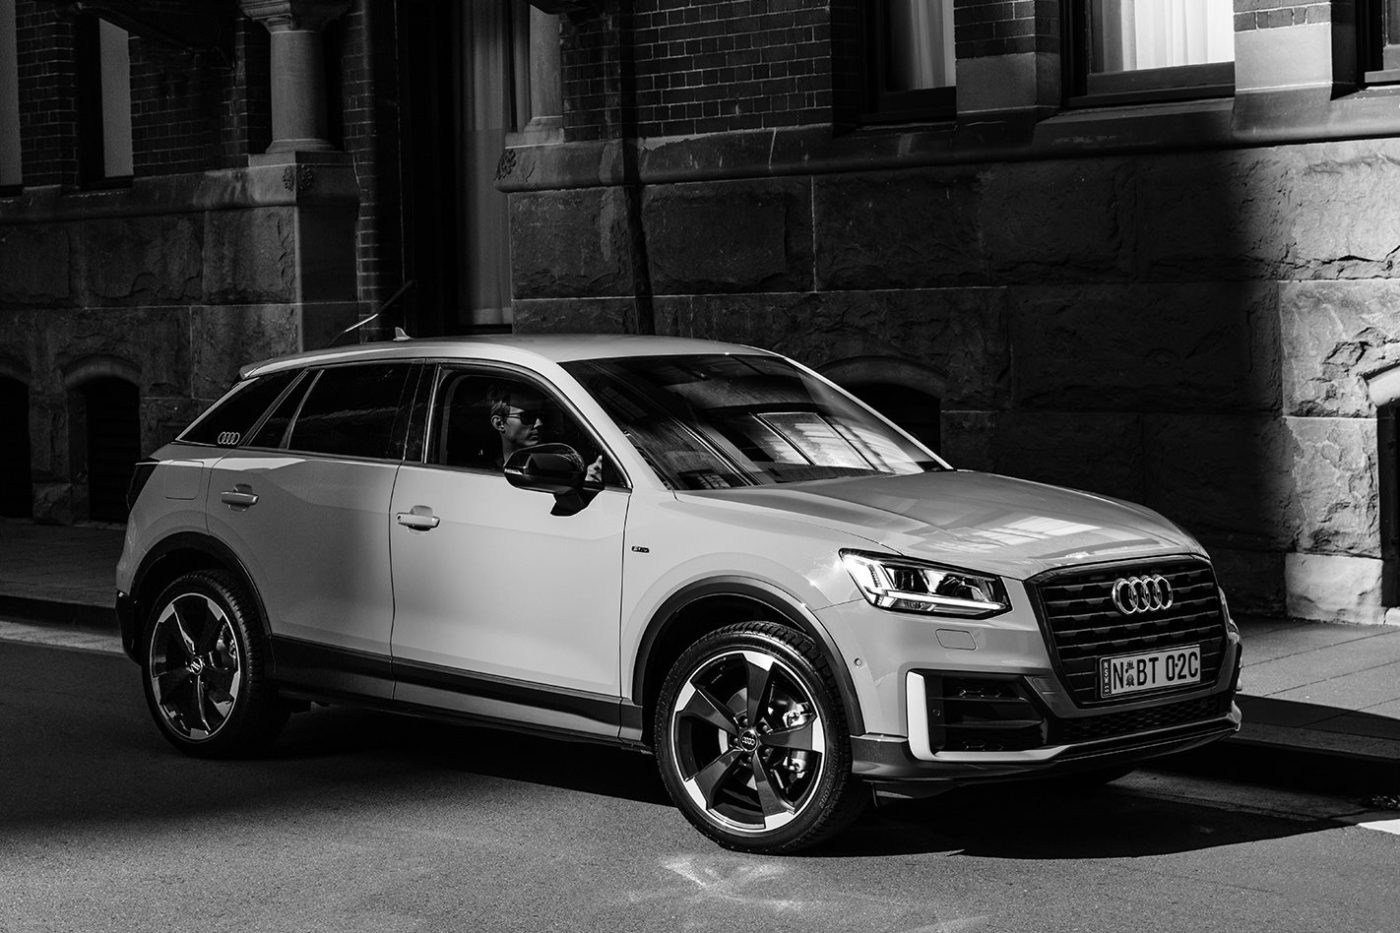 New 2019 Audi Q2 Top Photo New Car Release News On This Month